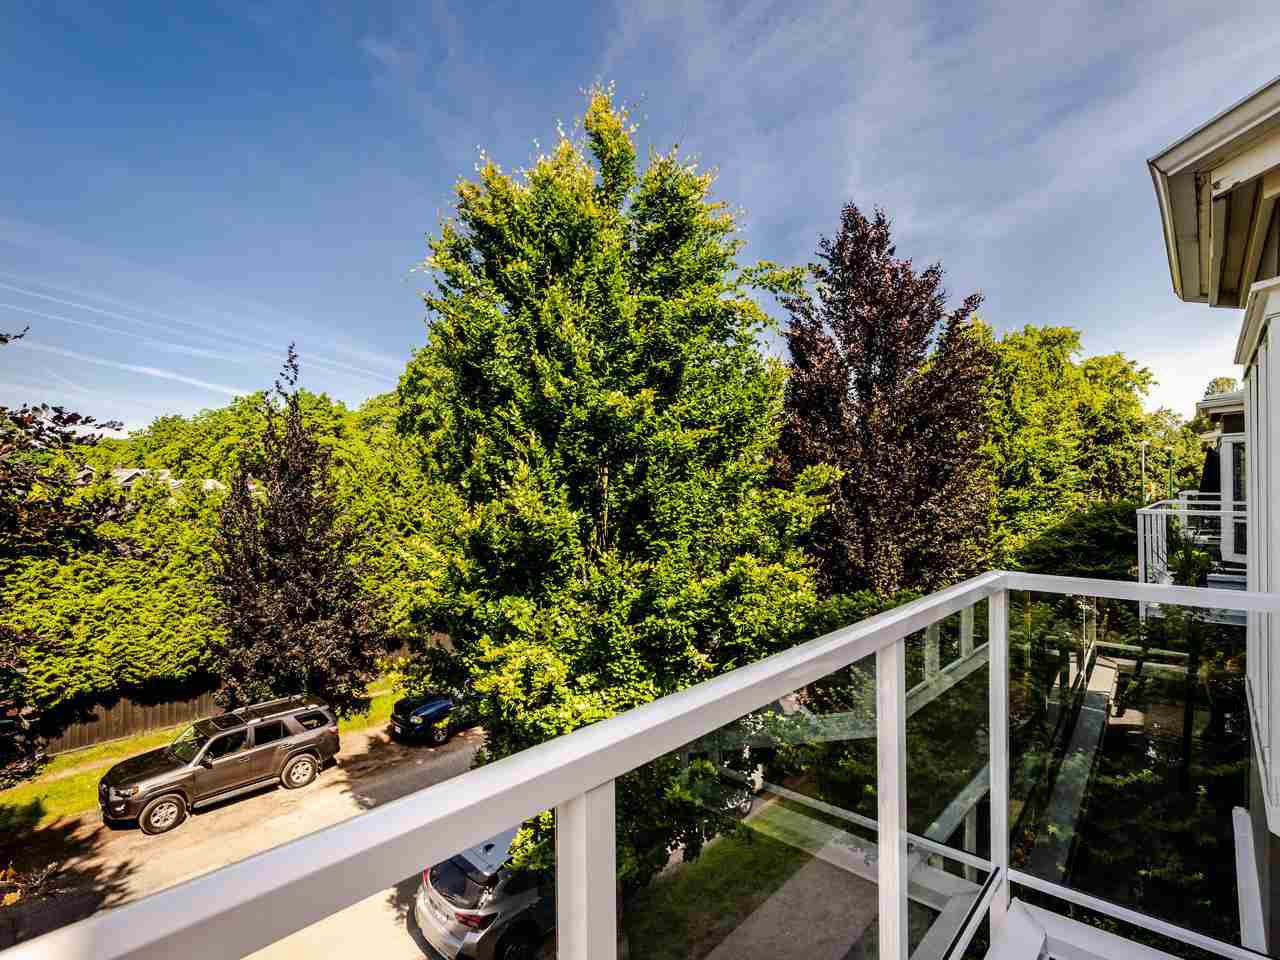 """Photo 5: Photos: 303 2288 W 12TH Avenue in Vancouver: Kitsilano Condo for sale in """"Connaught Point"""" (Vancouver West)  : MLS®# R2494985"""